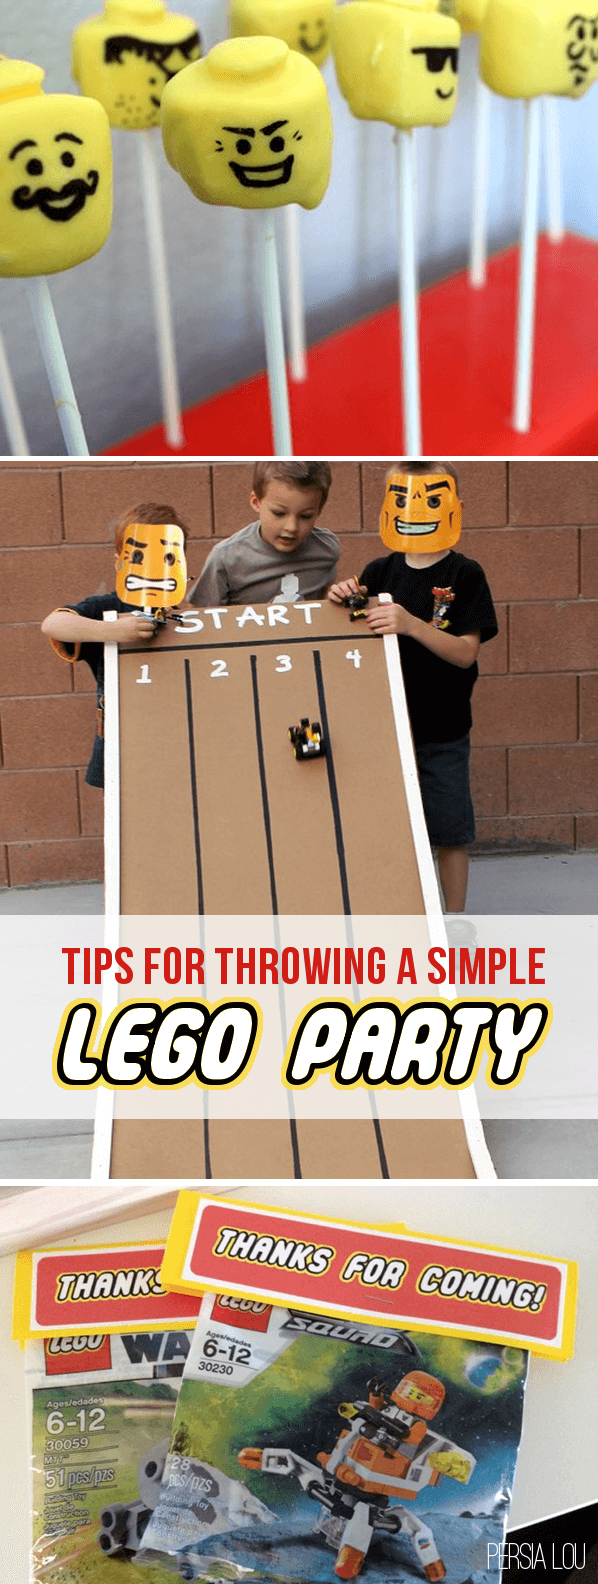 Tips for a fun, simple Lego party